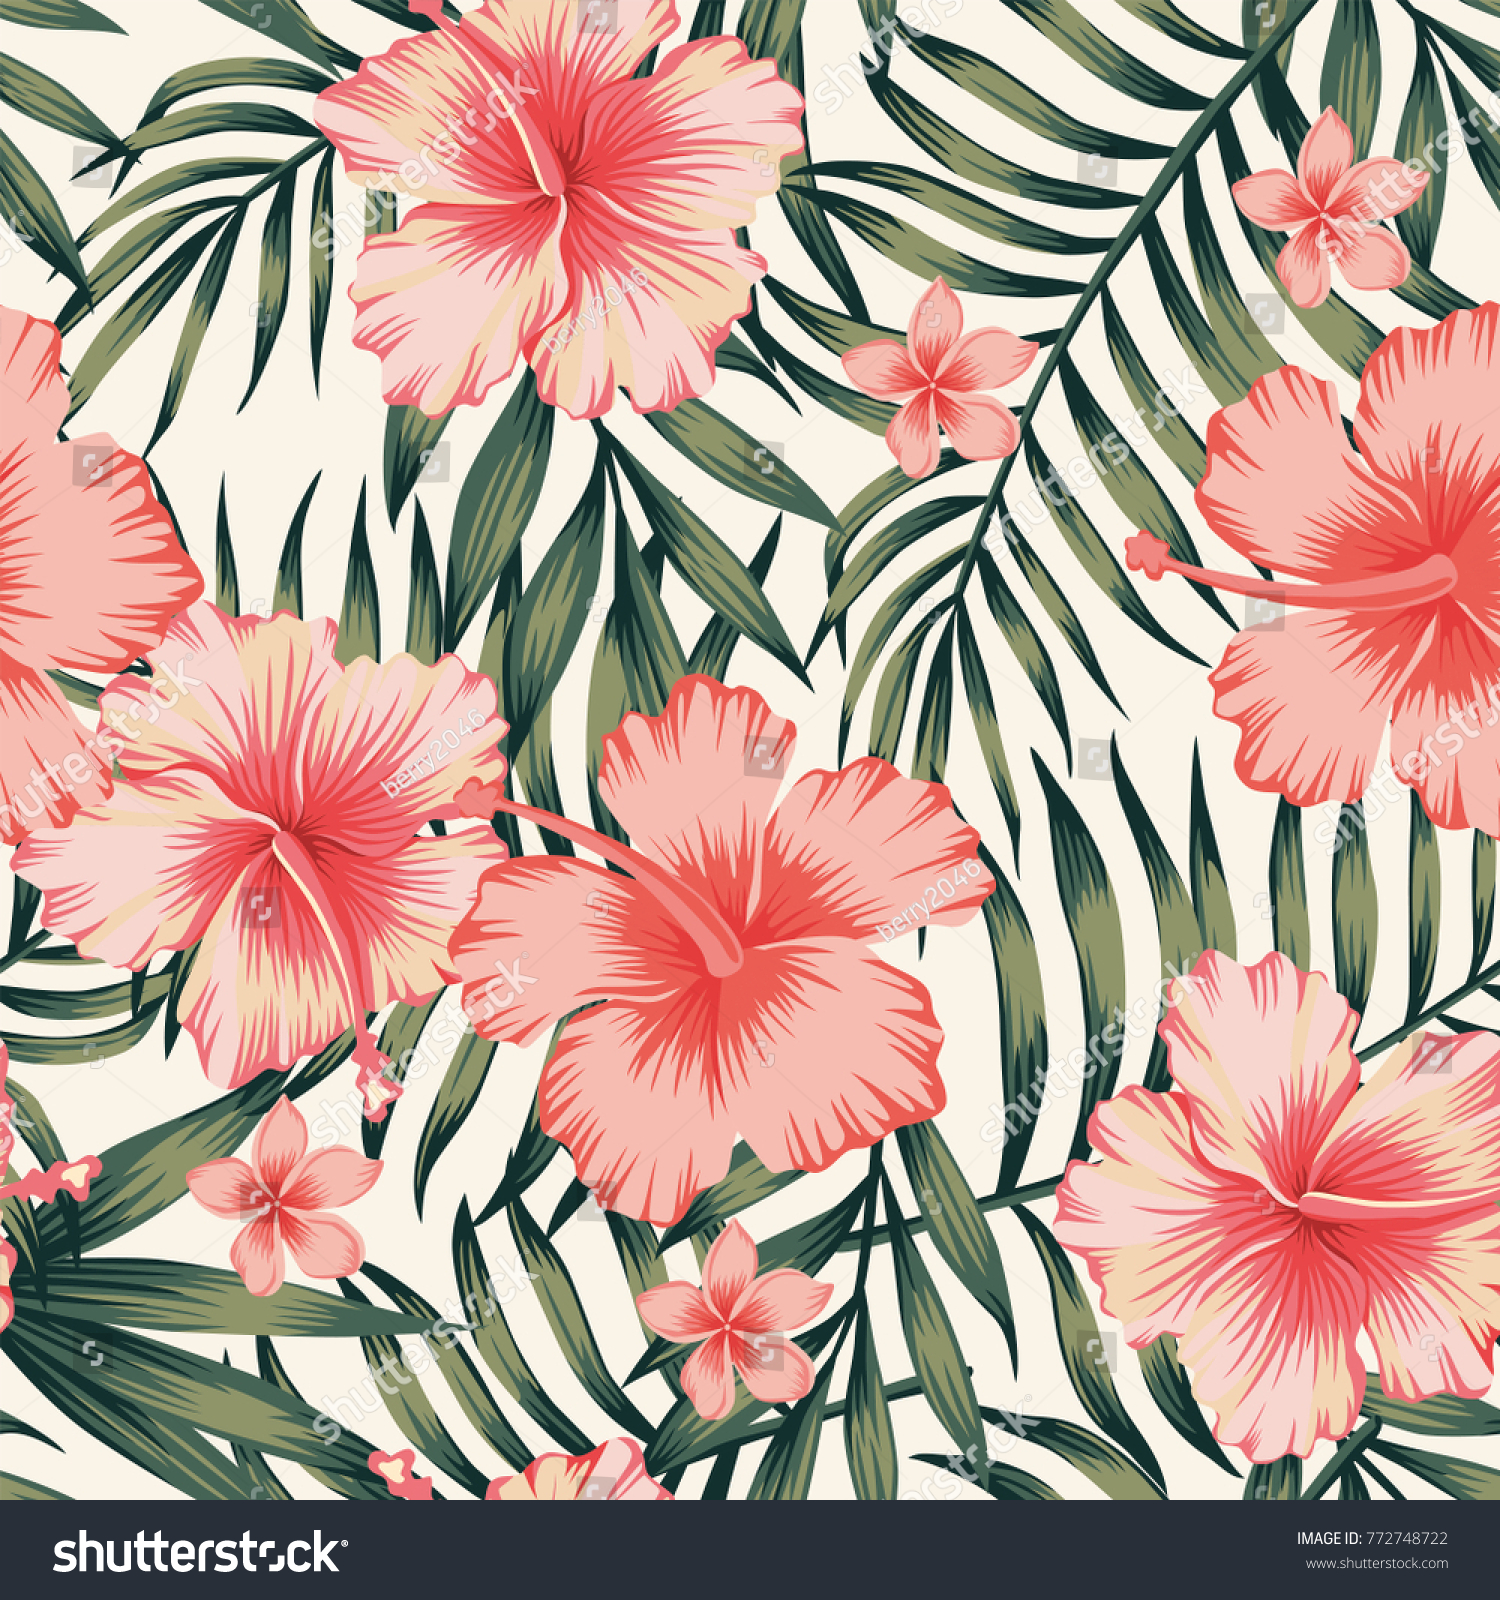 tropical flower pink hibiscus palm leaves stock photo (photo, vector